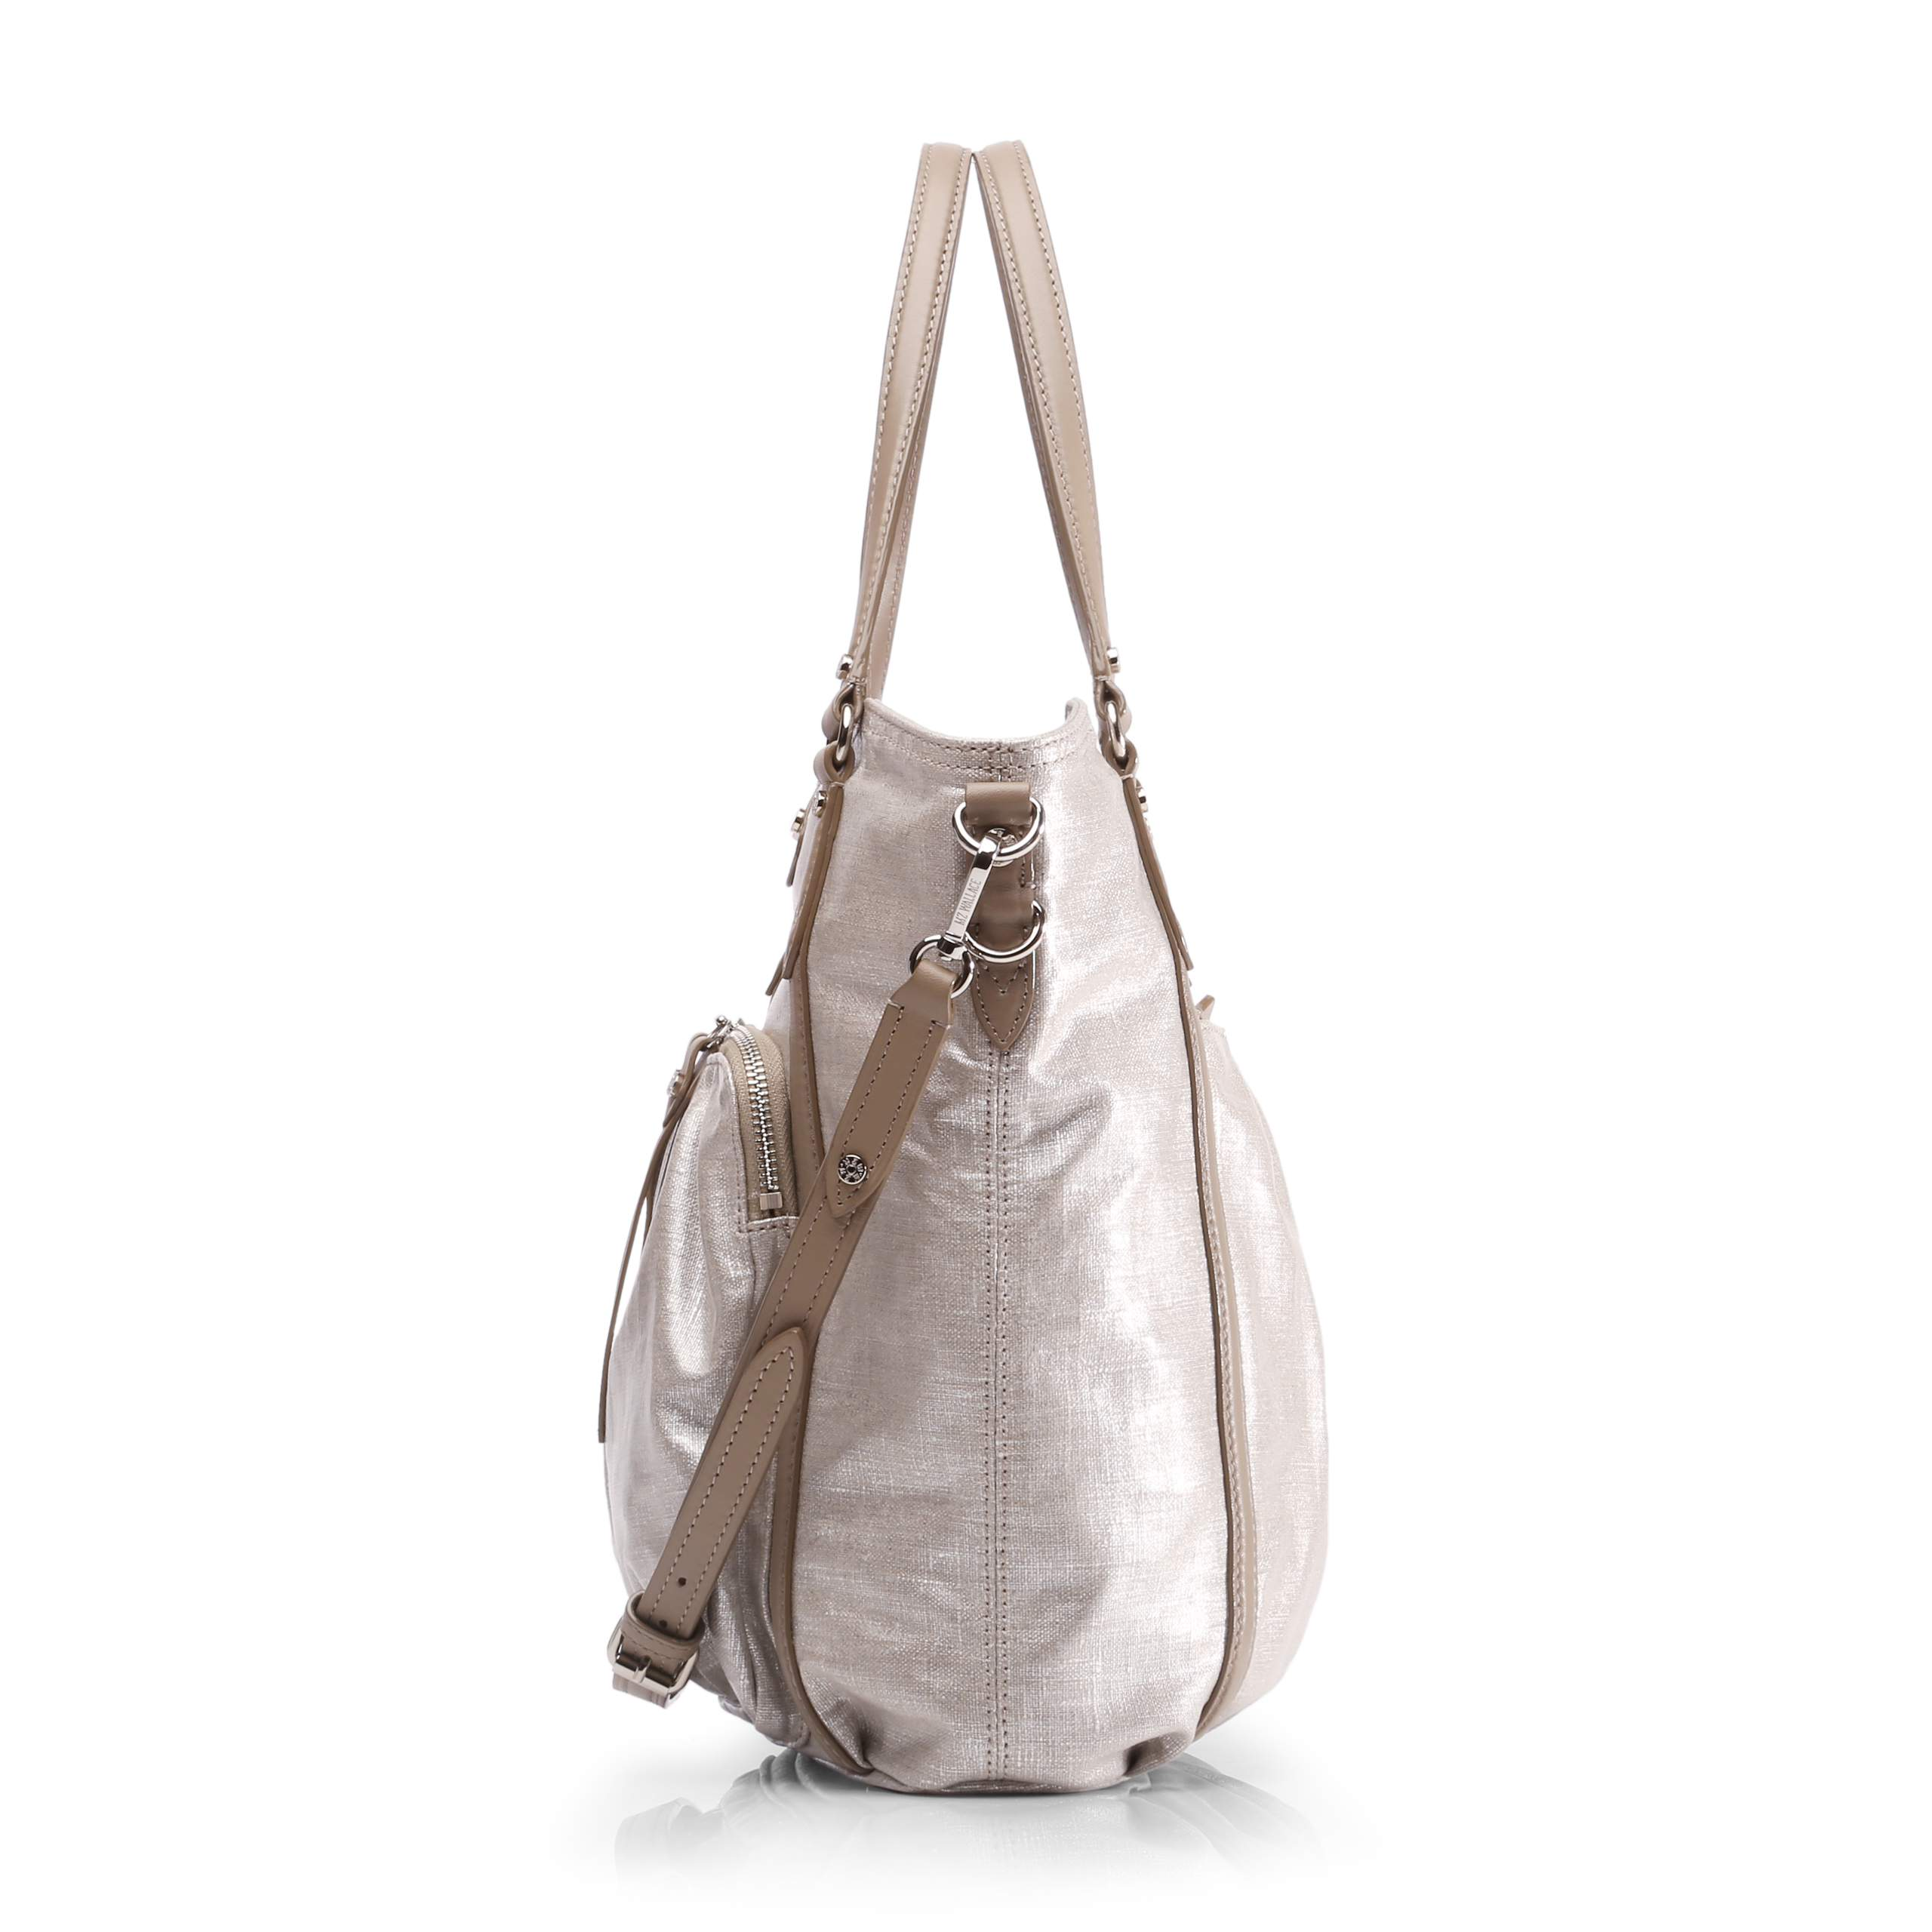 Glazed Linen Nikki Tote (1480773) in color Glazed Linen